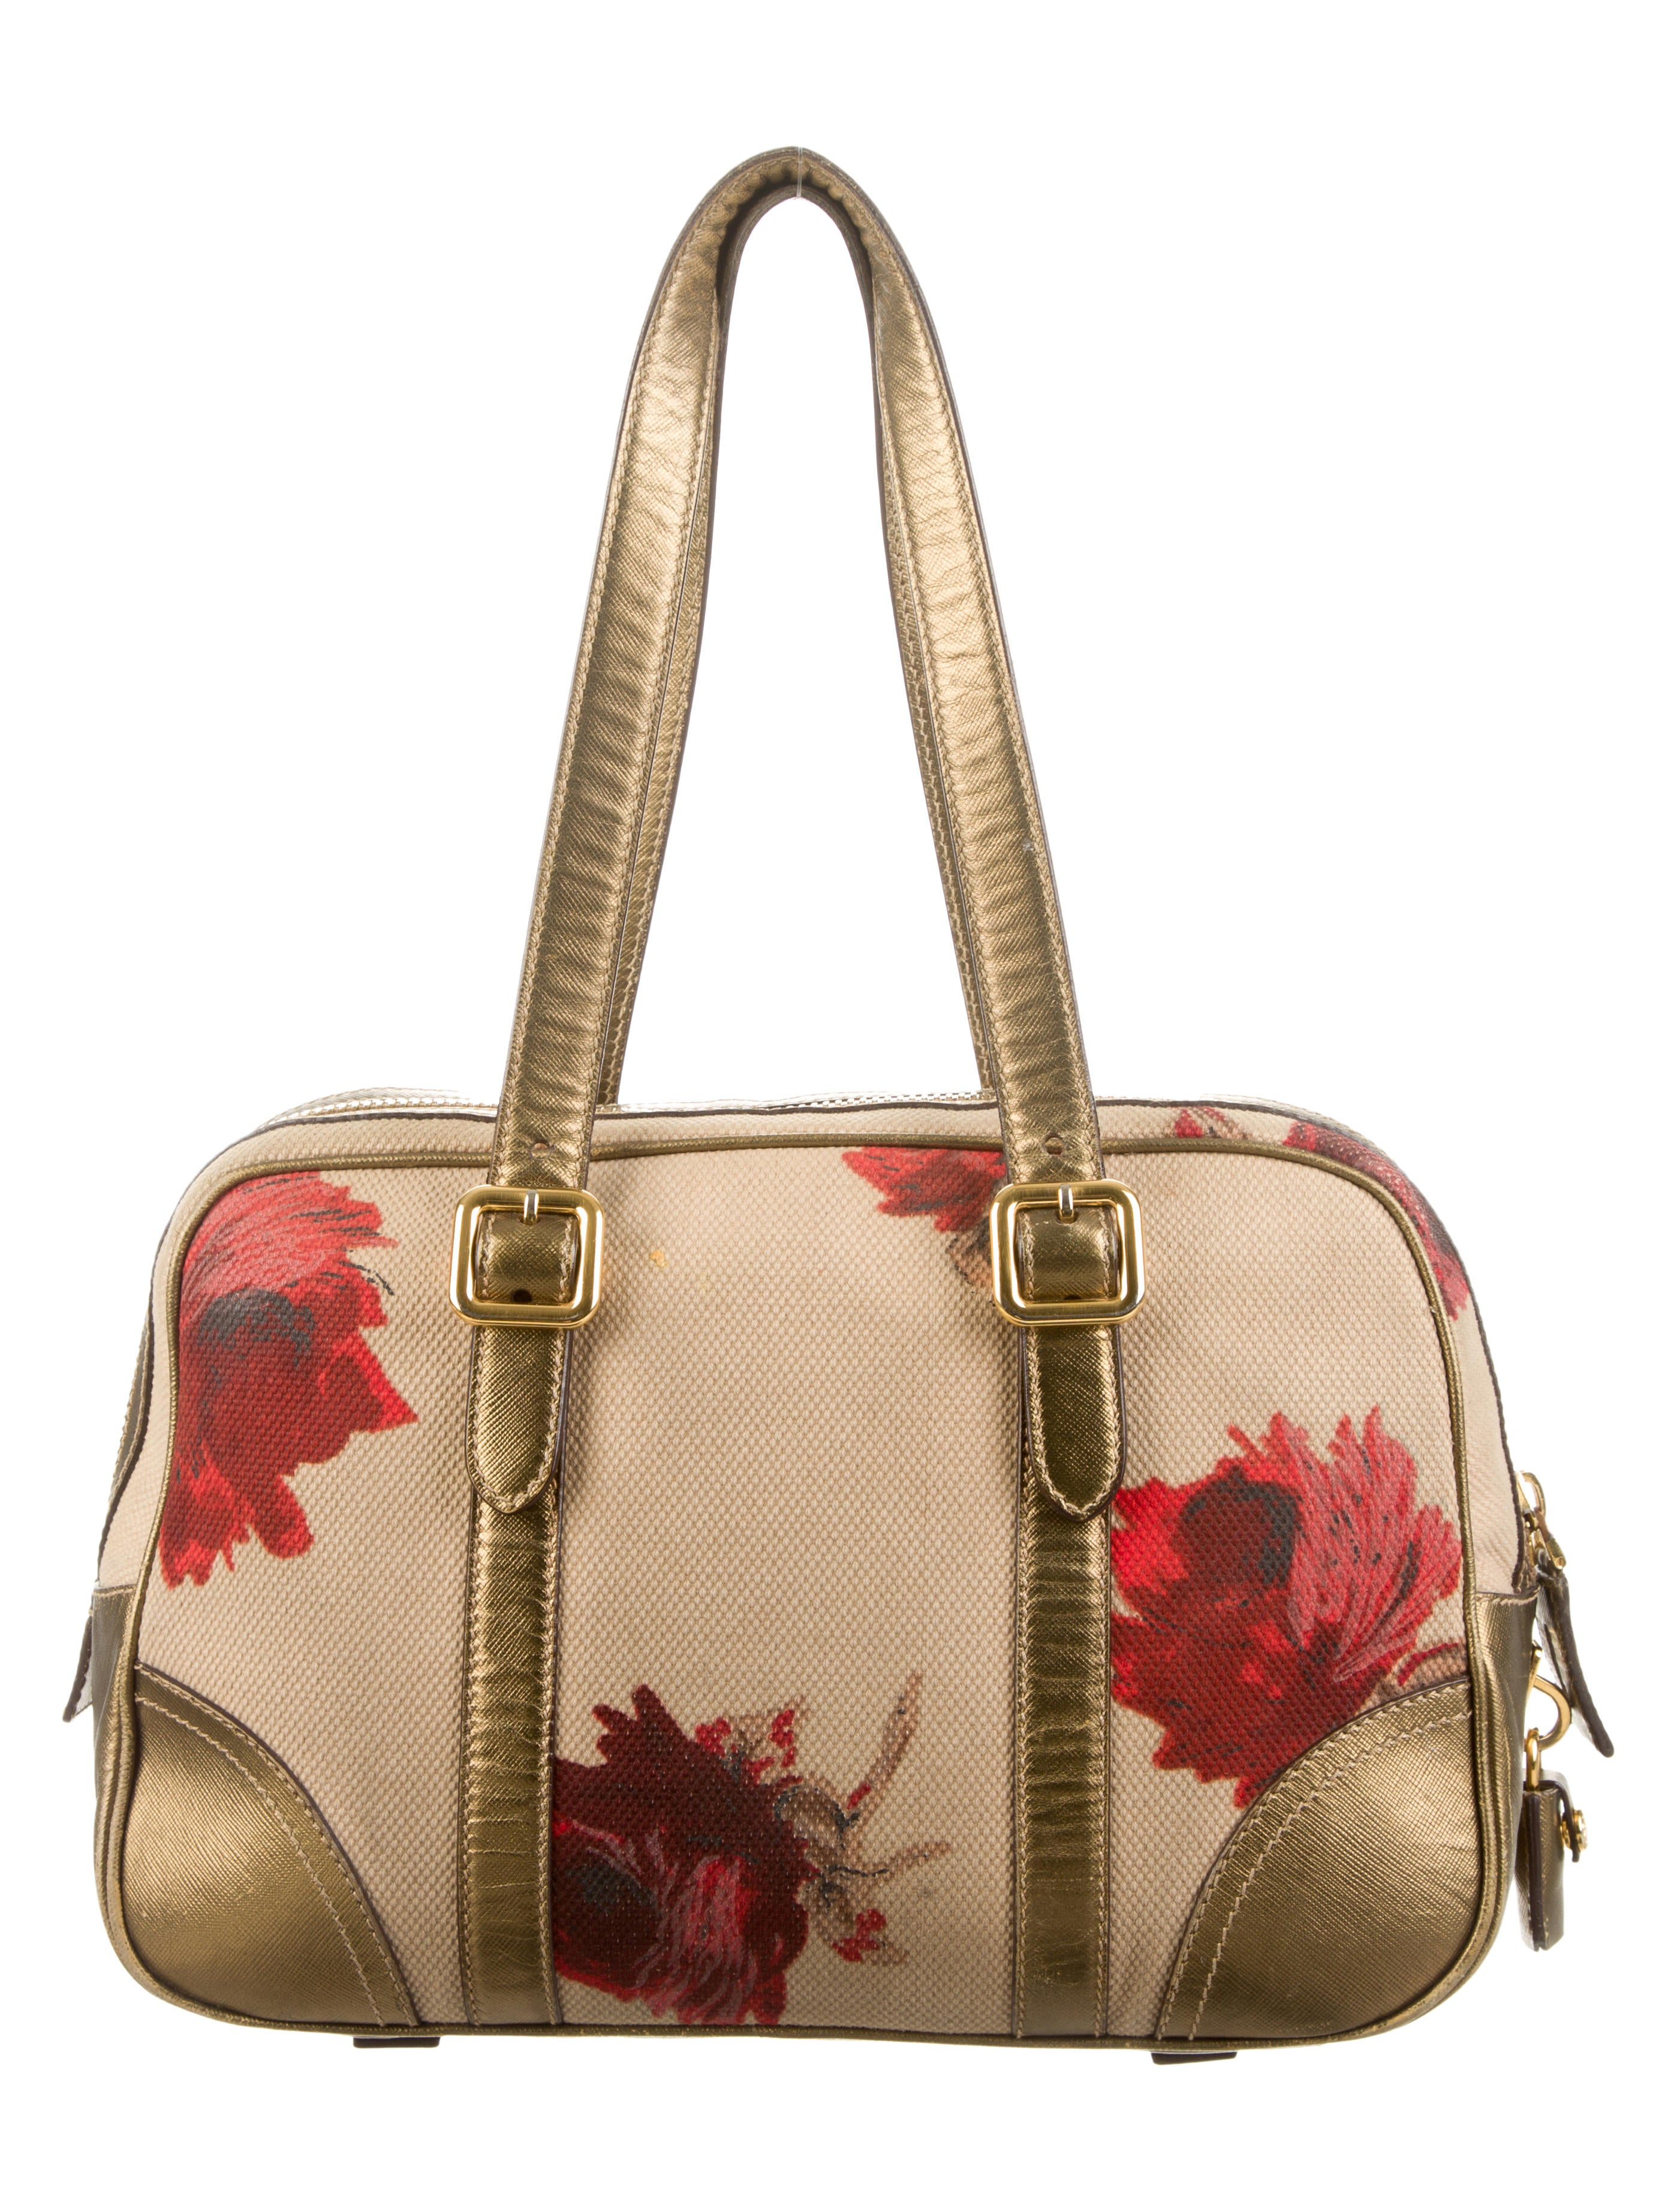 8c039fbac9a1 Prada Floral Shoulder Bag | Stanford Center for Opportunity Policy ...